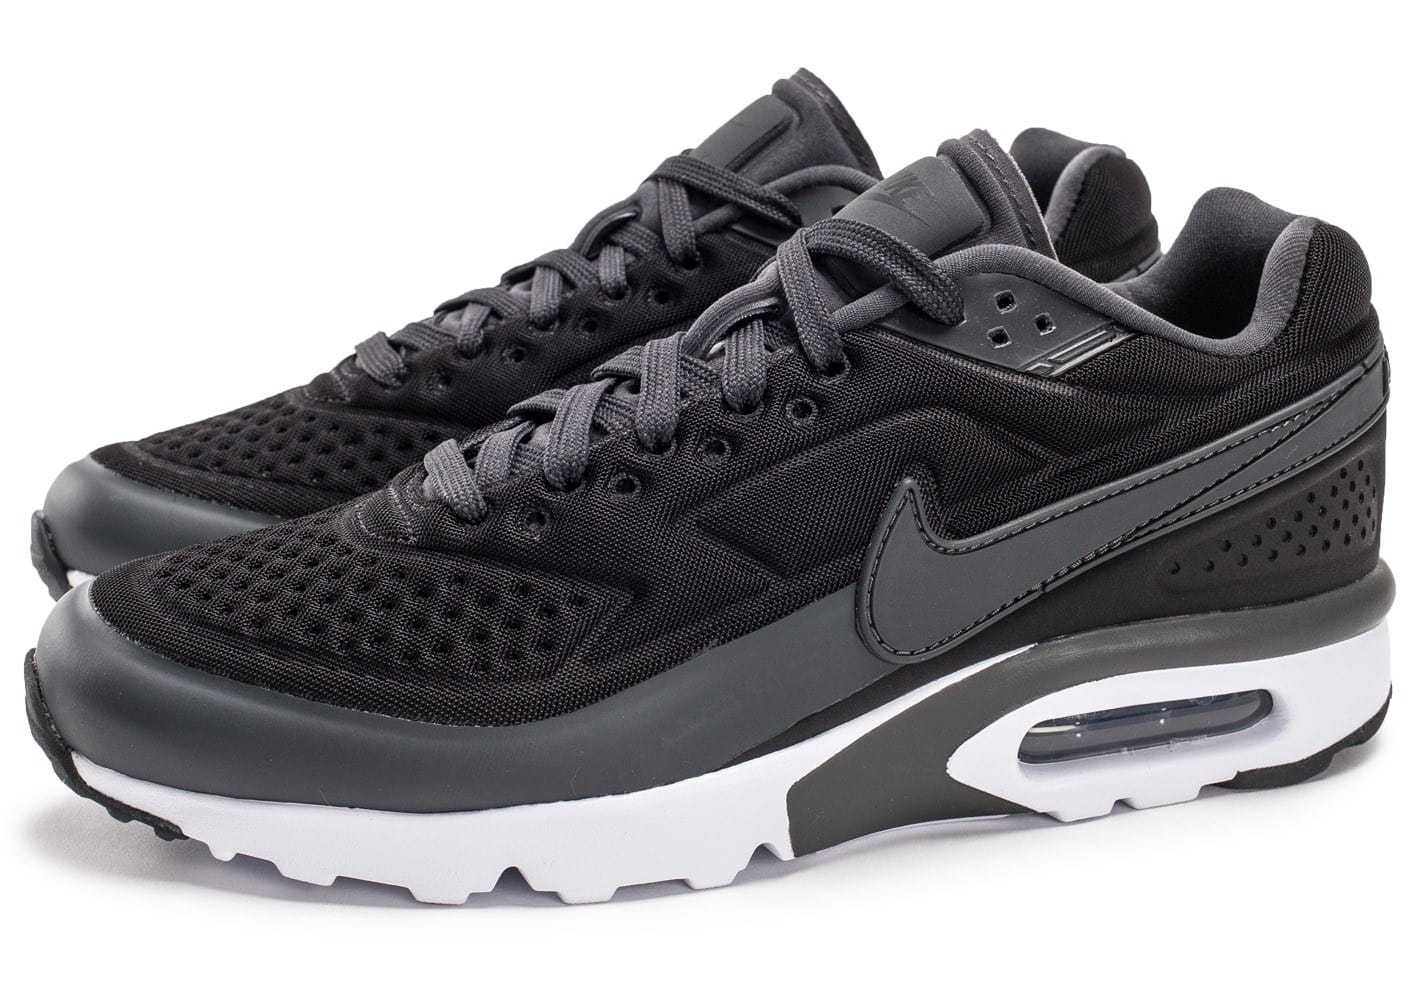 check-out f4502 36dd8 air max bw homme noir